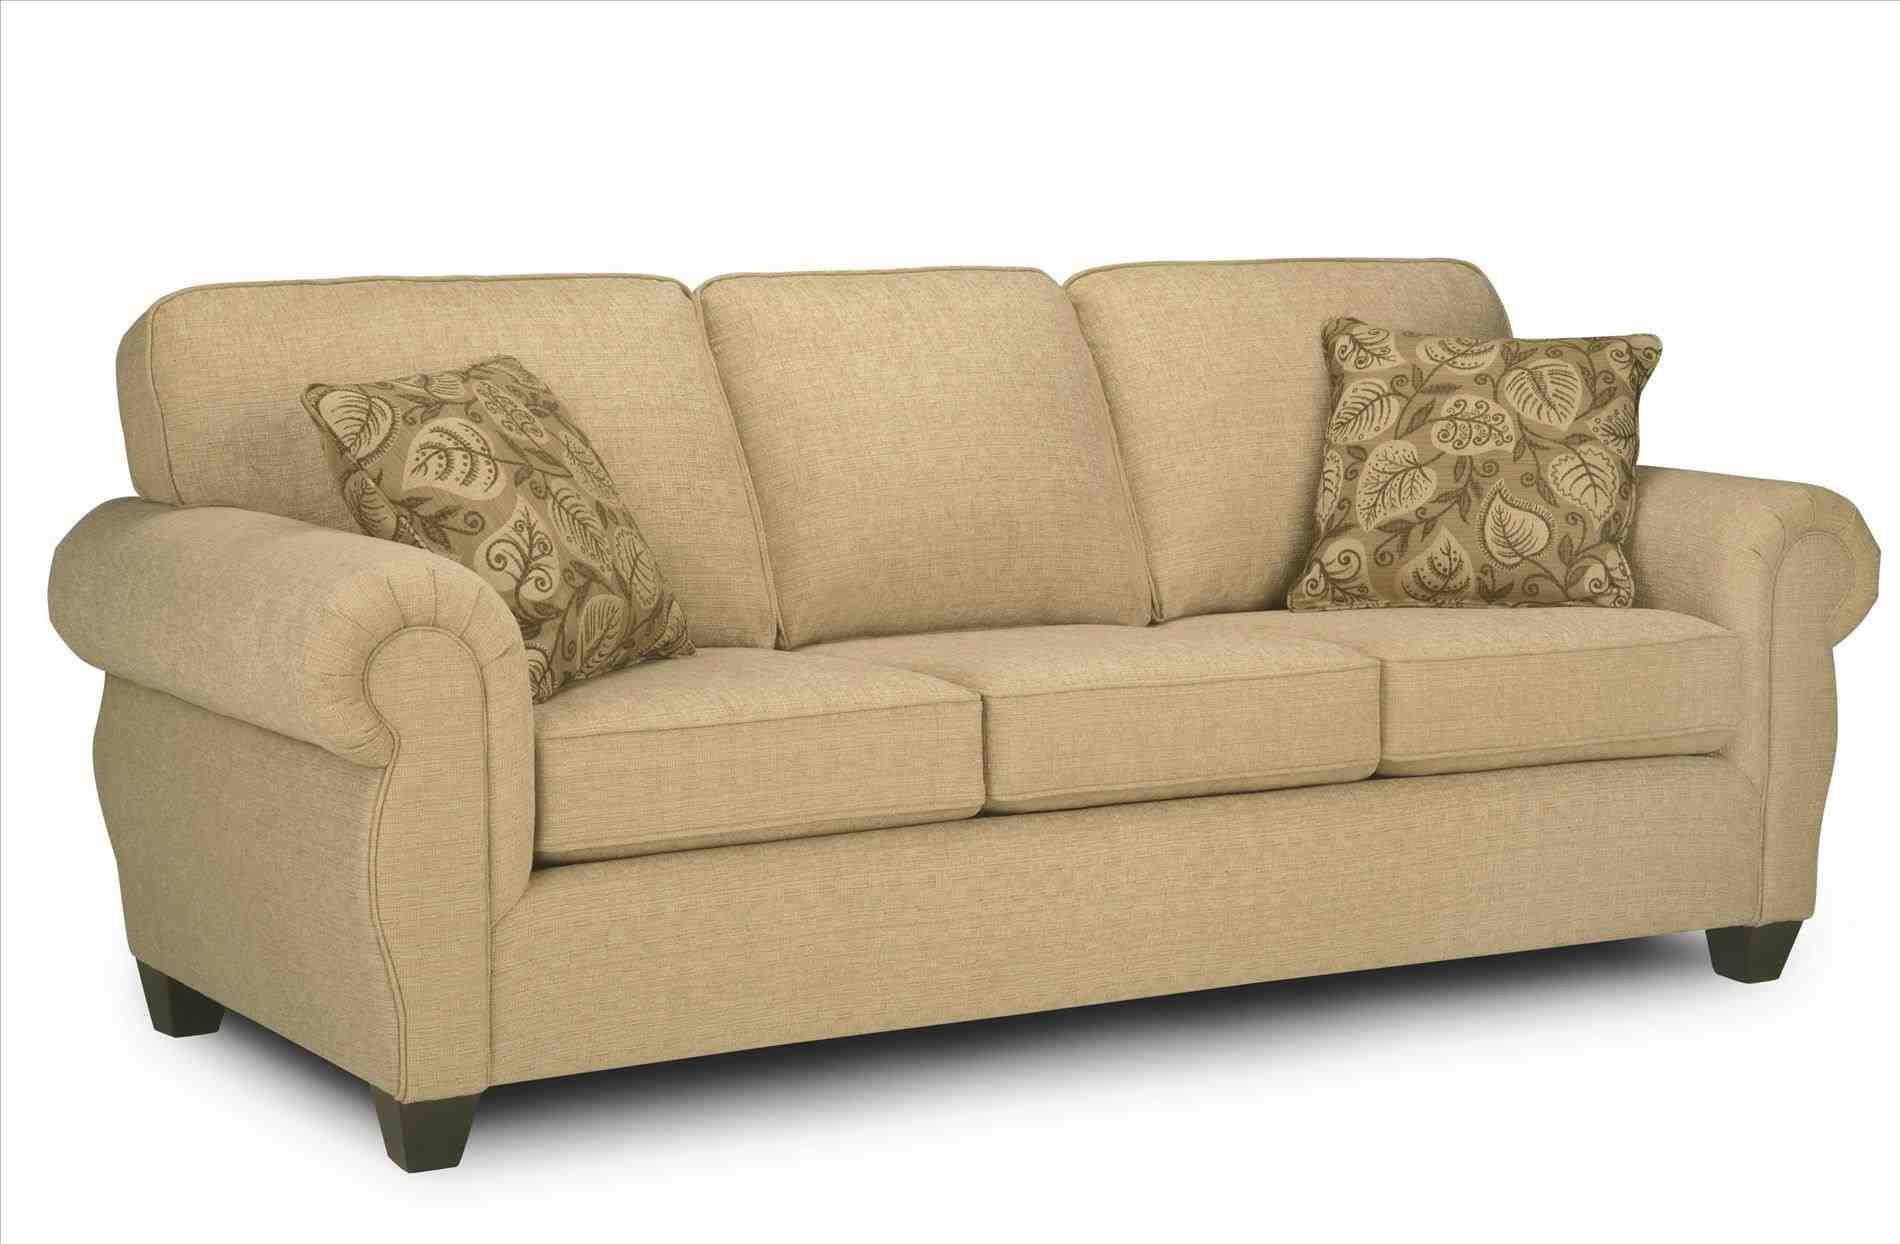 Sofa Bed For Sale Toronto Cheap Sofa In Toronto Large Sectional Sofas Designg Leather With